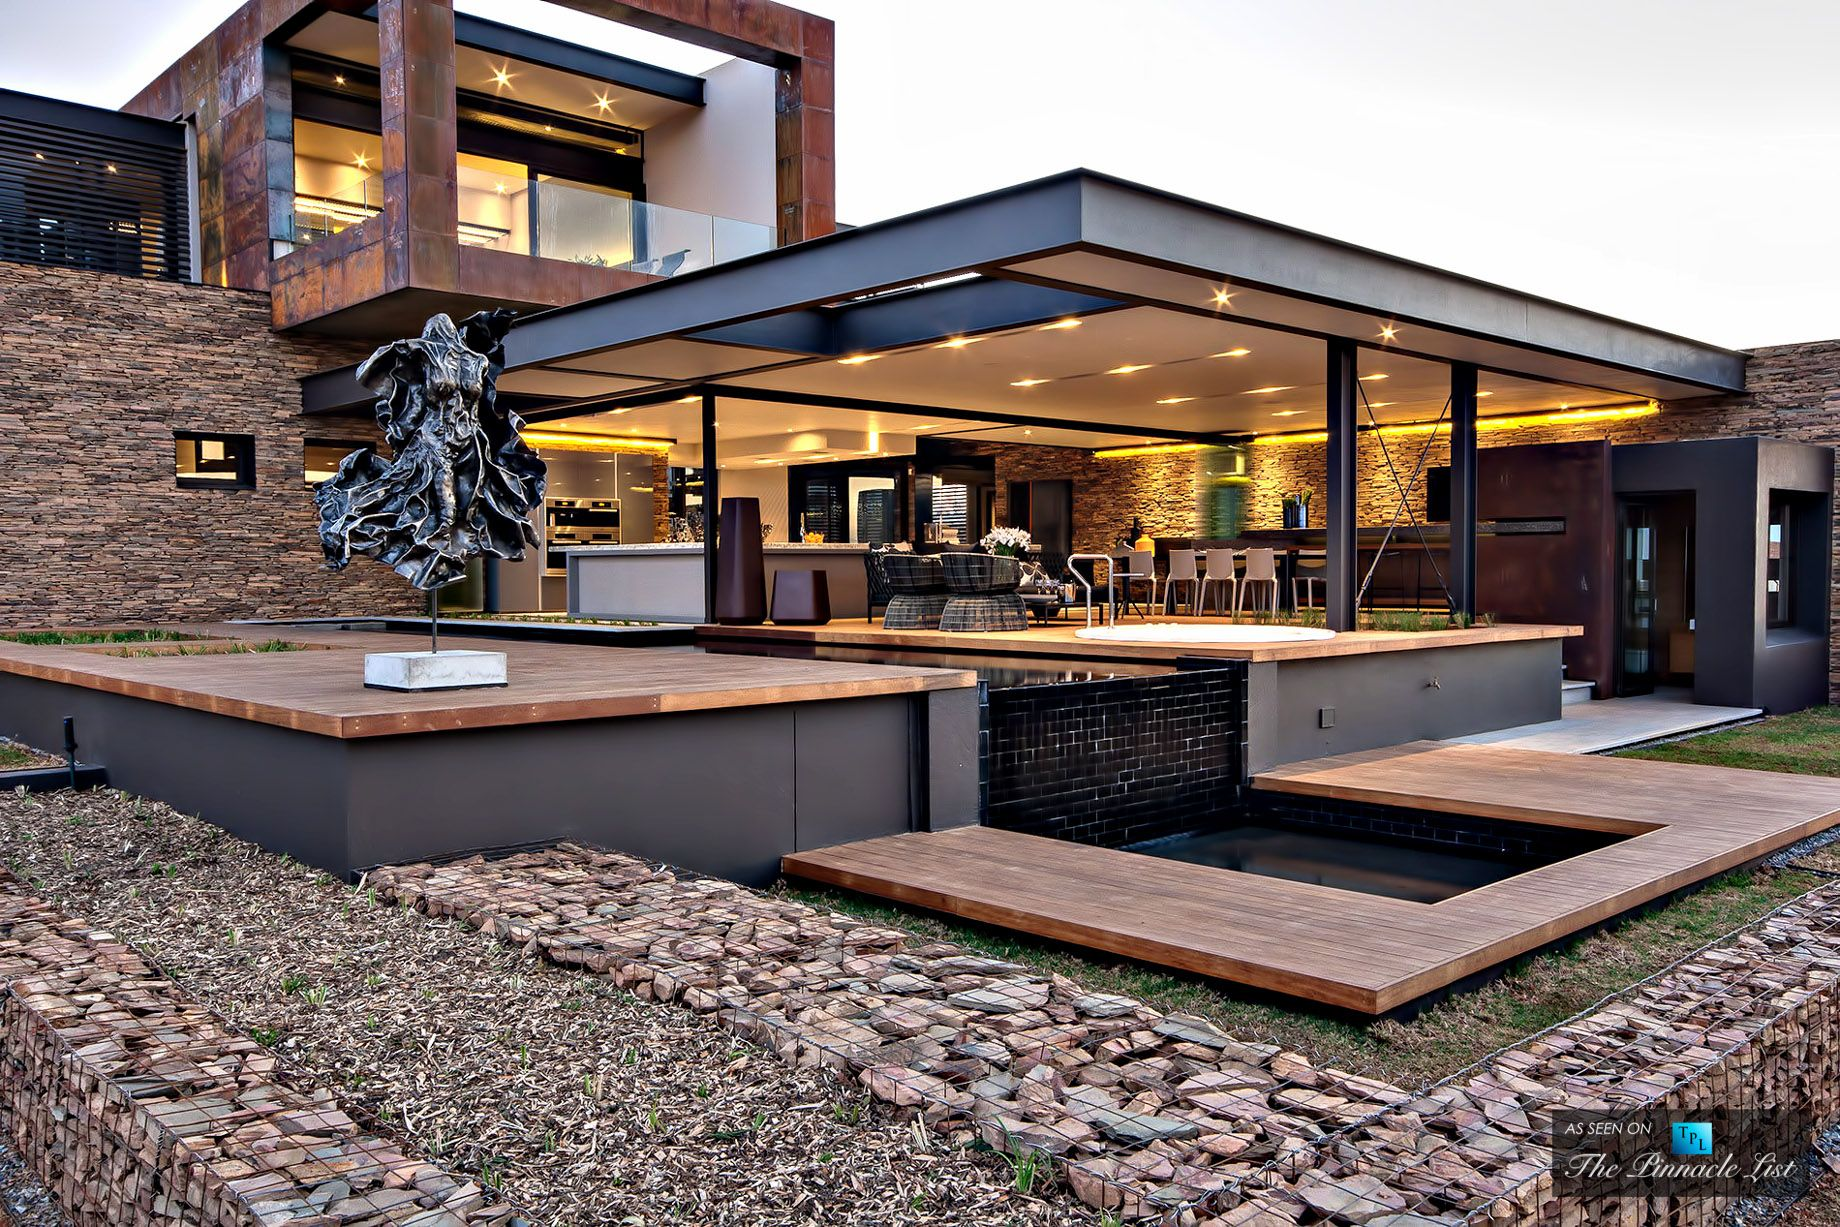 House plans in pretoria south africa for Cheap building materials for houses